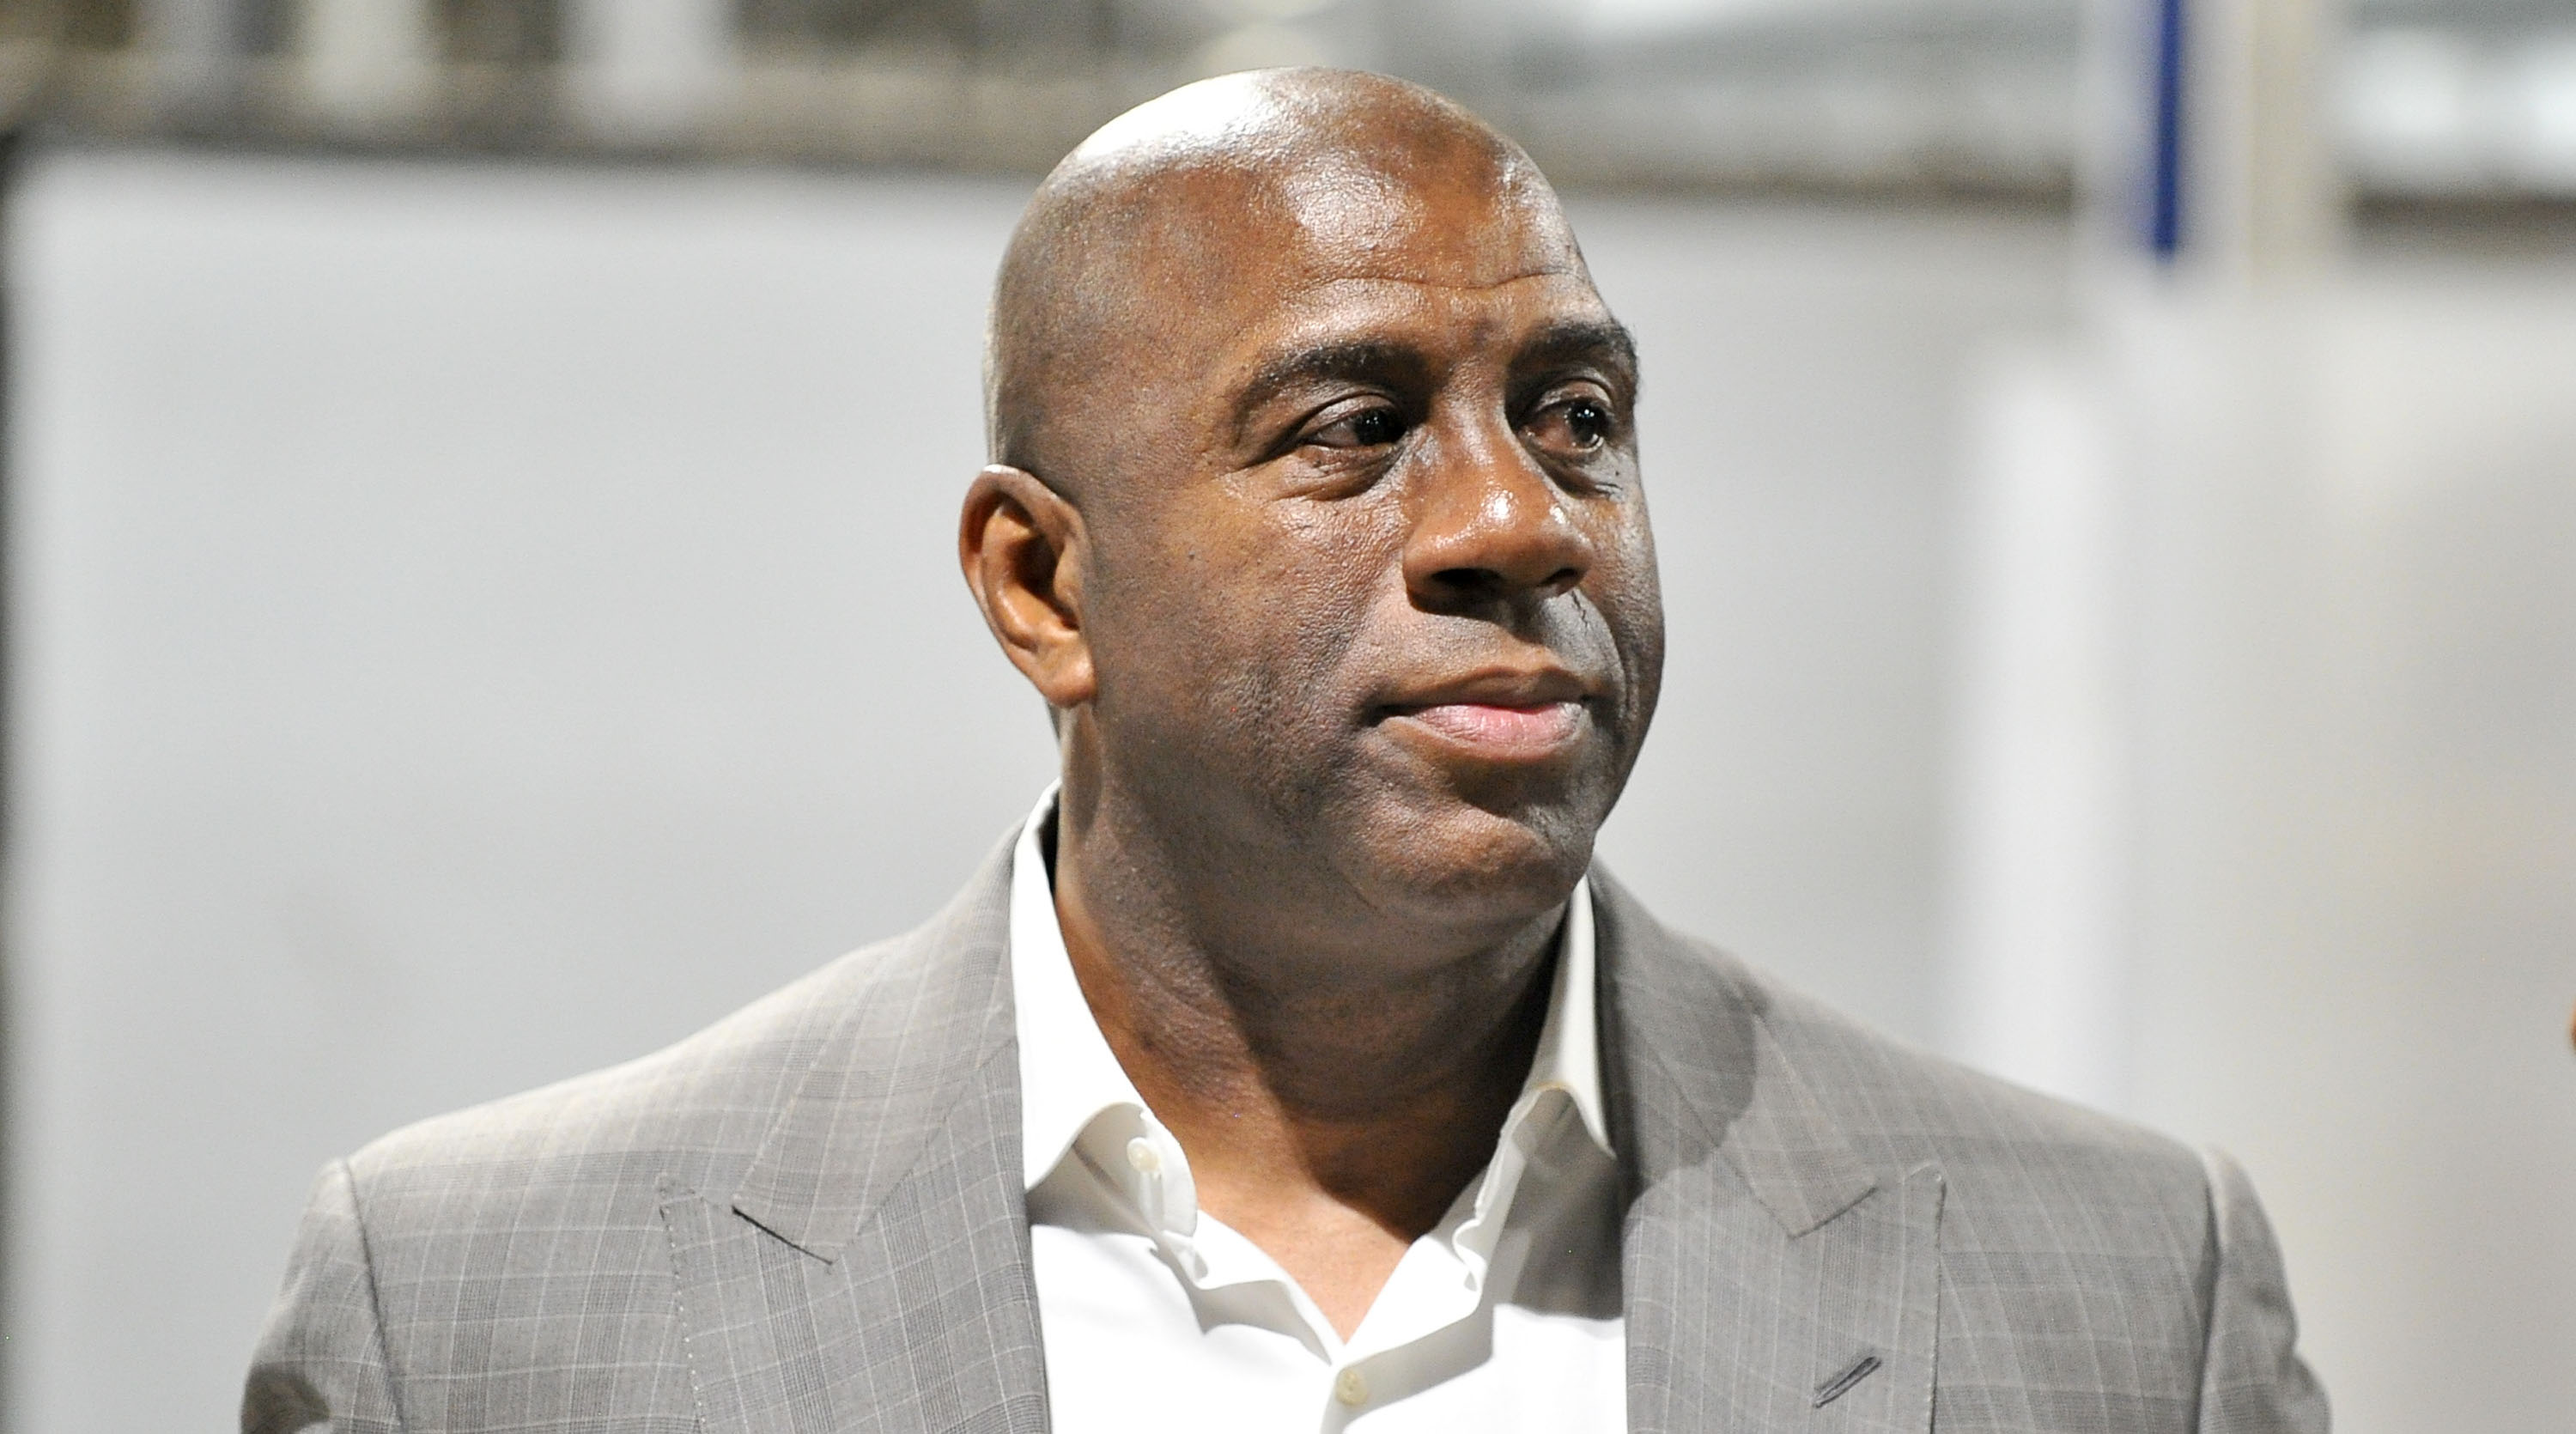 MAgic Johnson on resigning from Lakers